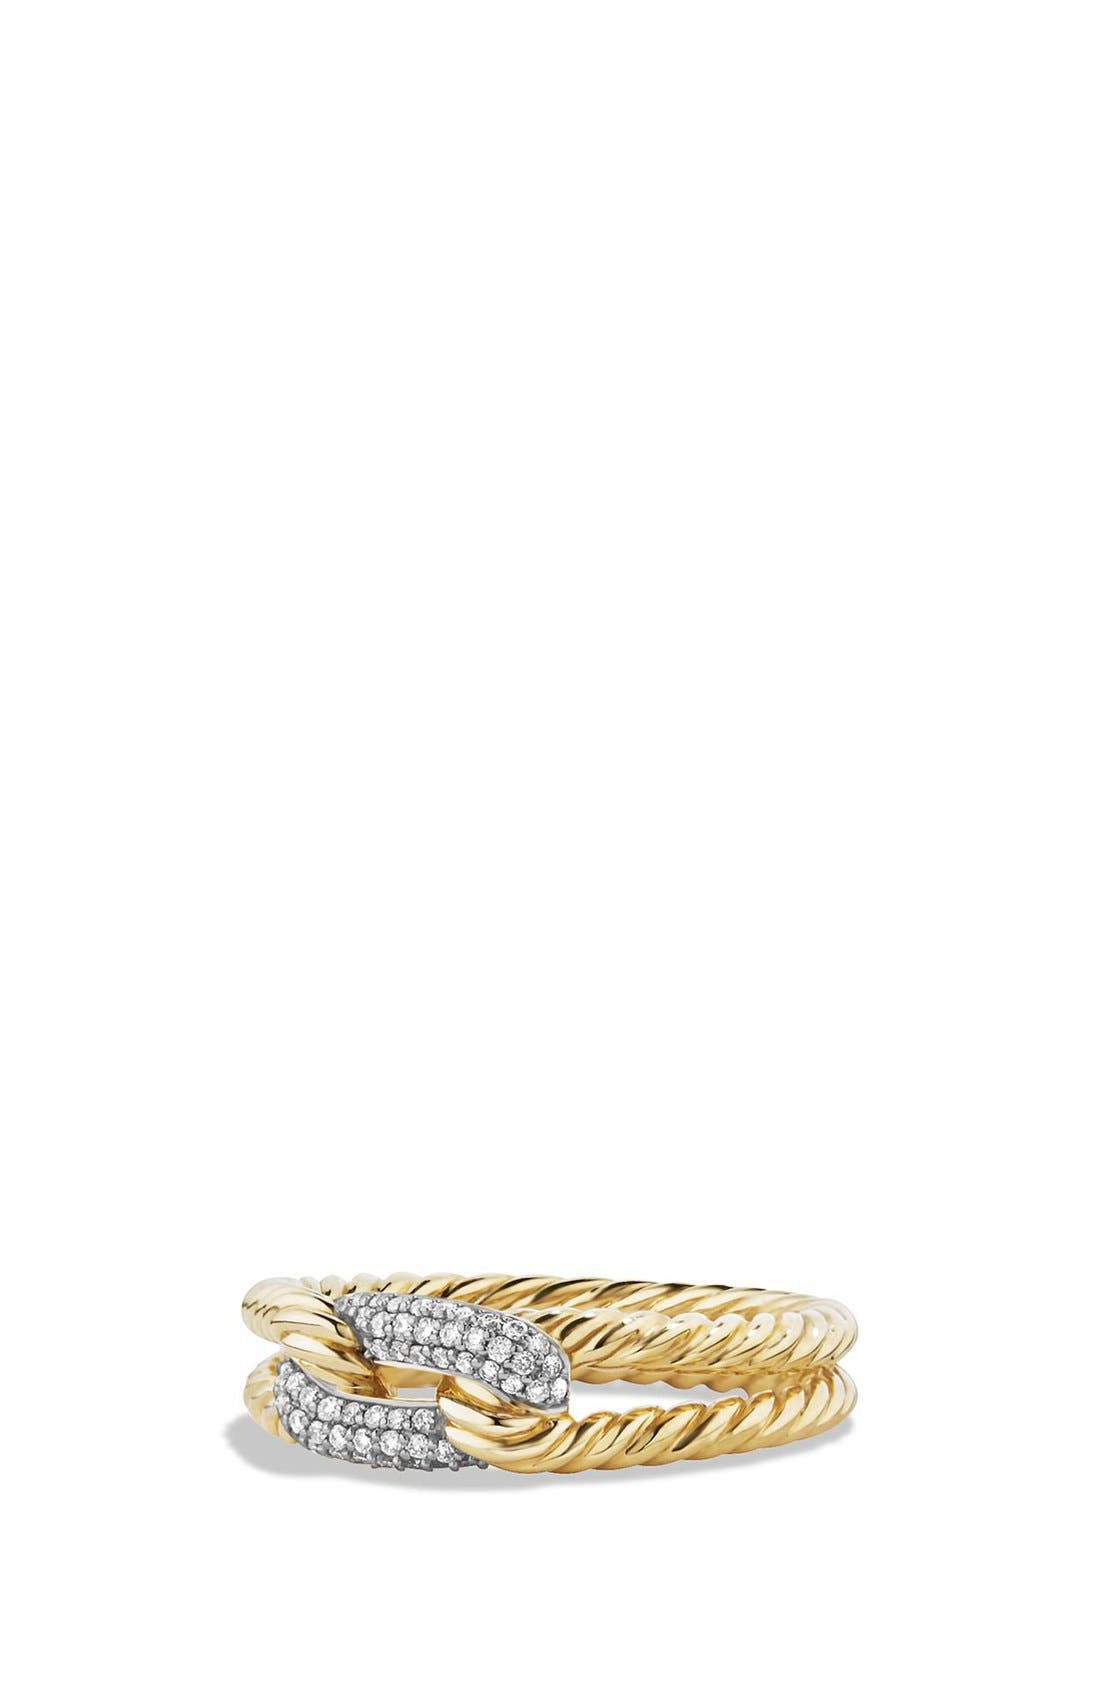 'Petite Pavé' Loop Ring with Diamonds in 18K Gold,                         Main,                         color, GOLD